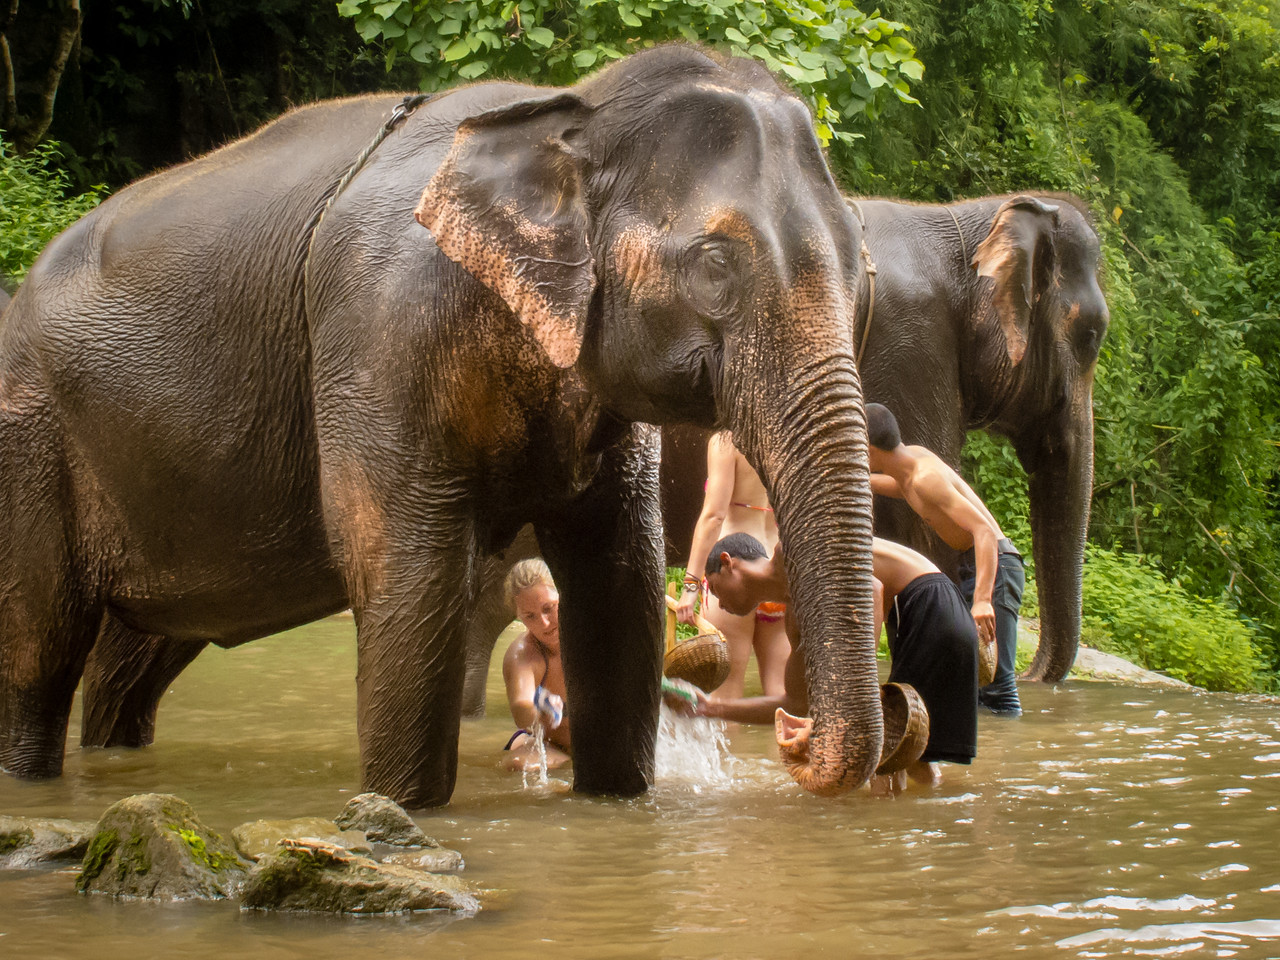 Bathing Elephants Can be Hard Work, but the Elephants Seem to Love It